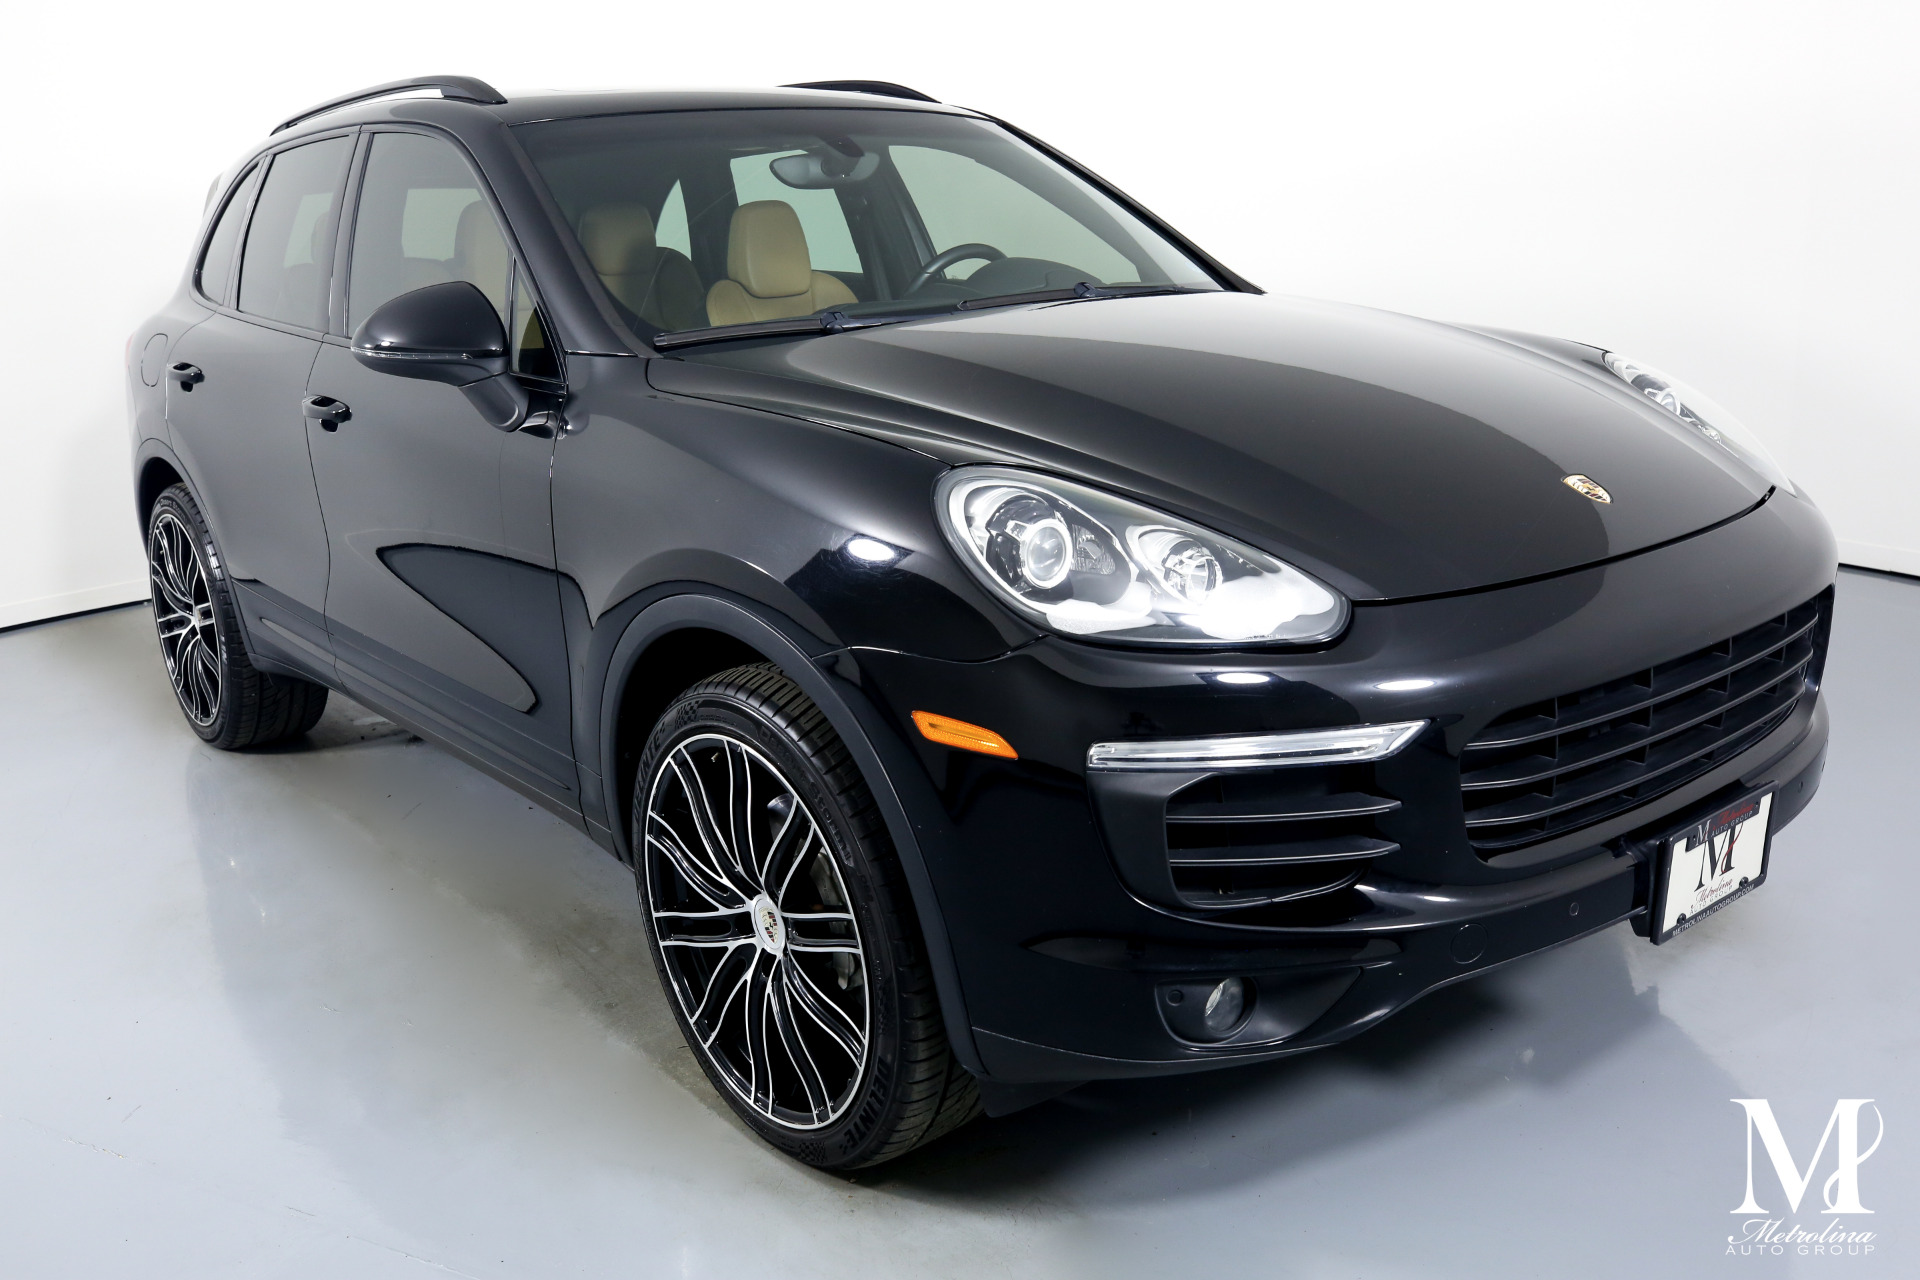 Used 2016 Porsche Cayenne for sale Sold at Metrolina Auto Group in Charlotte NC 28217 - 2